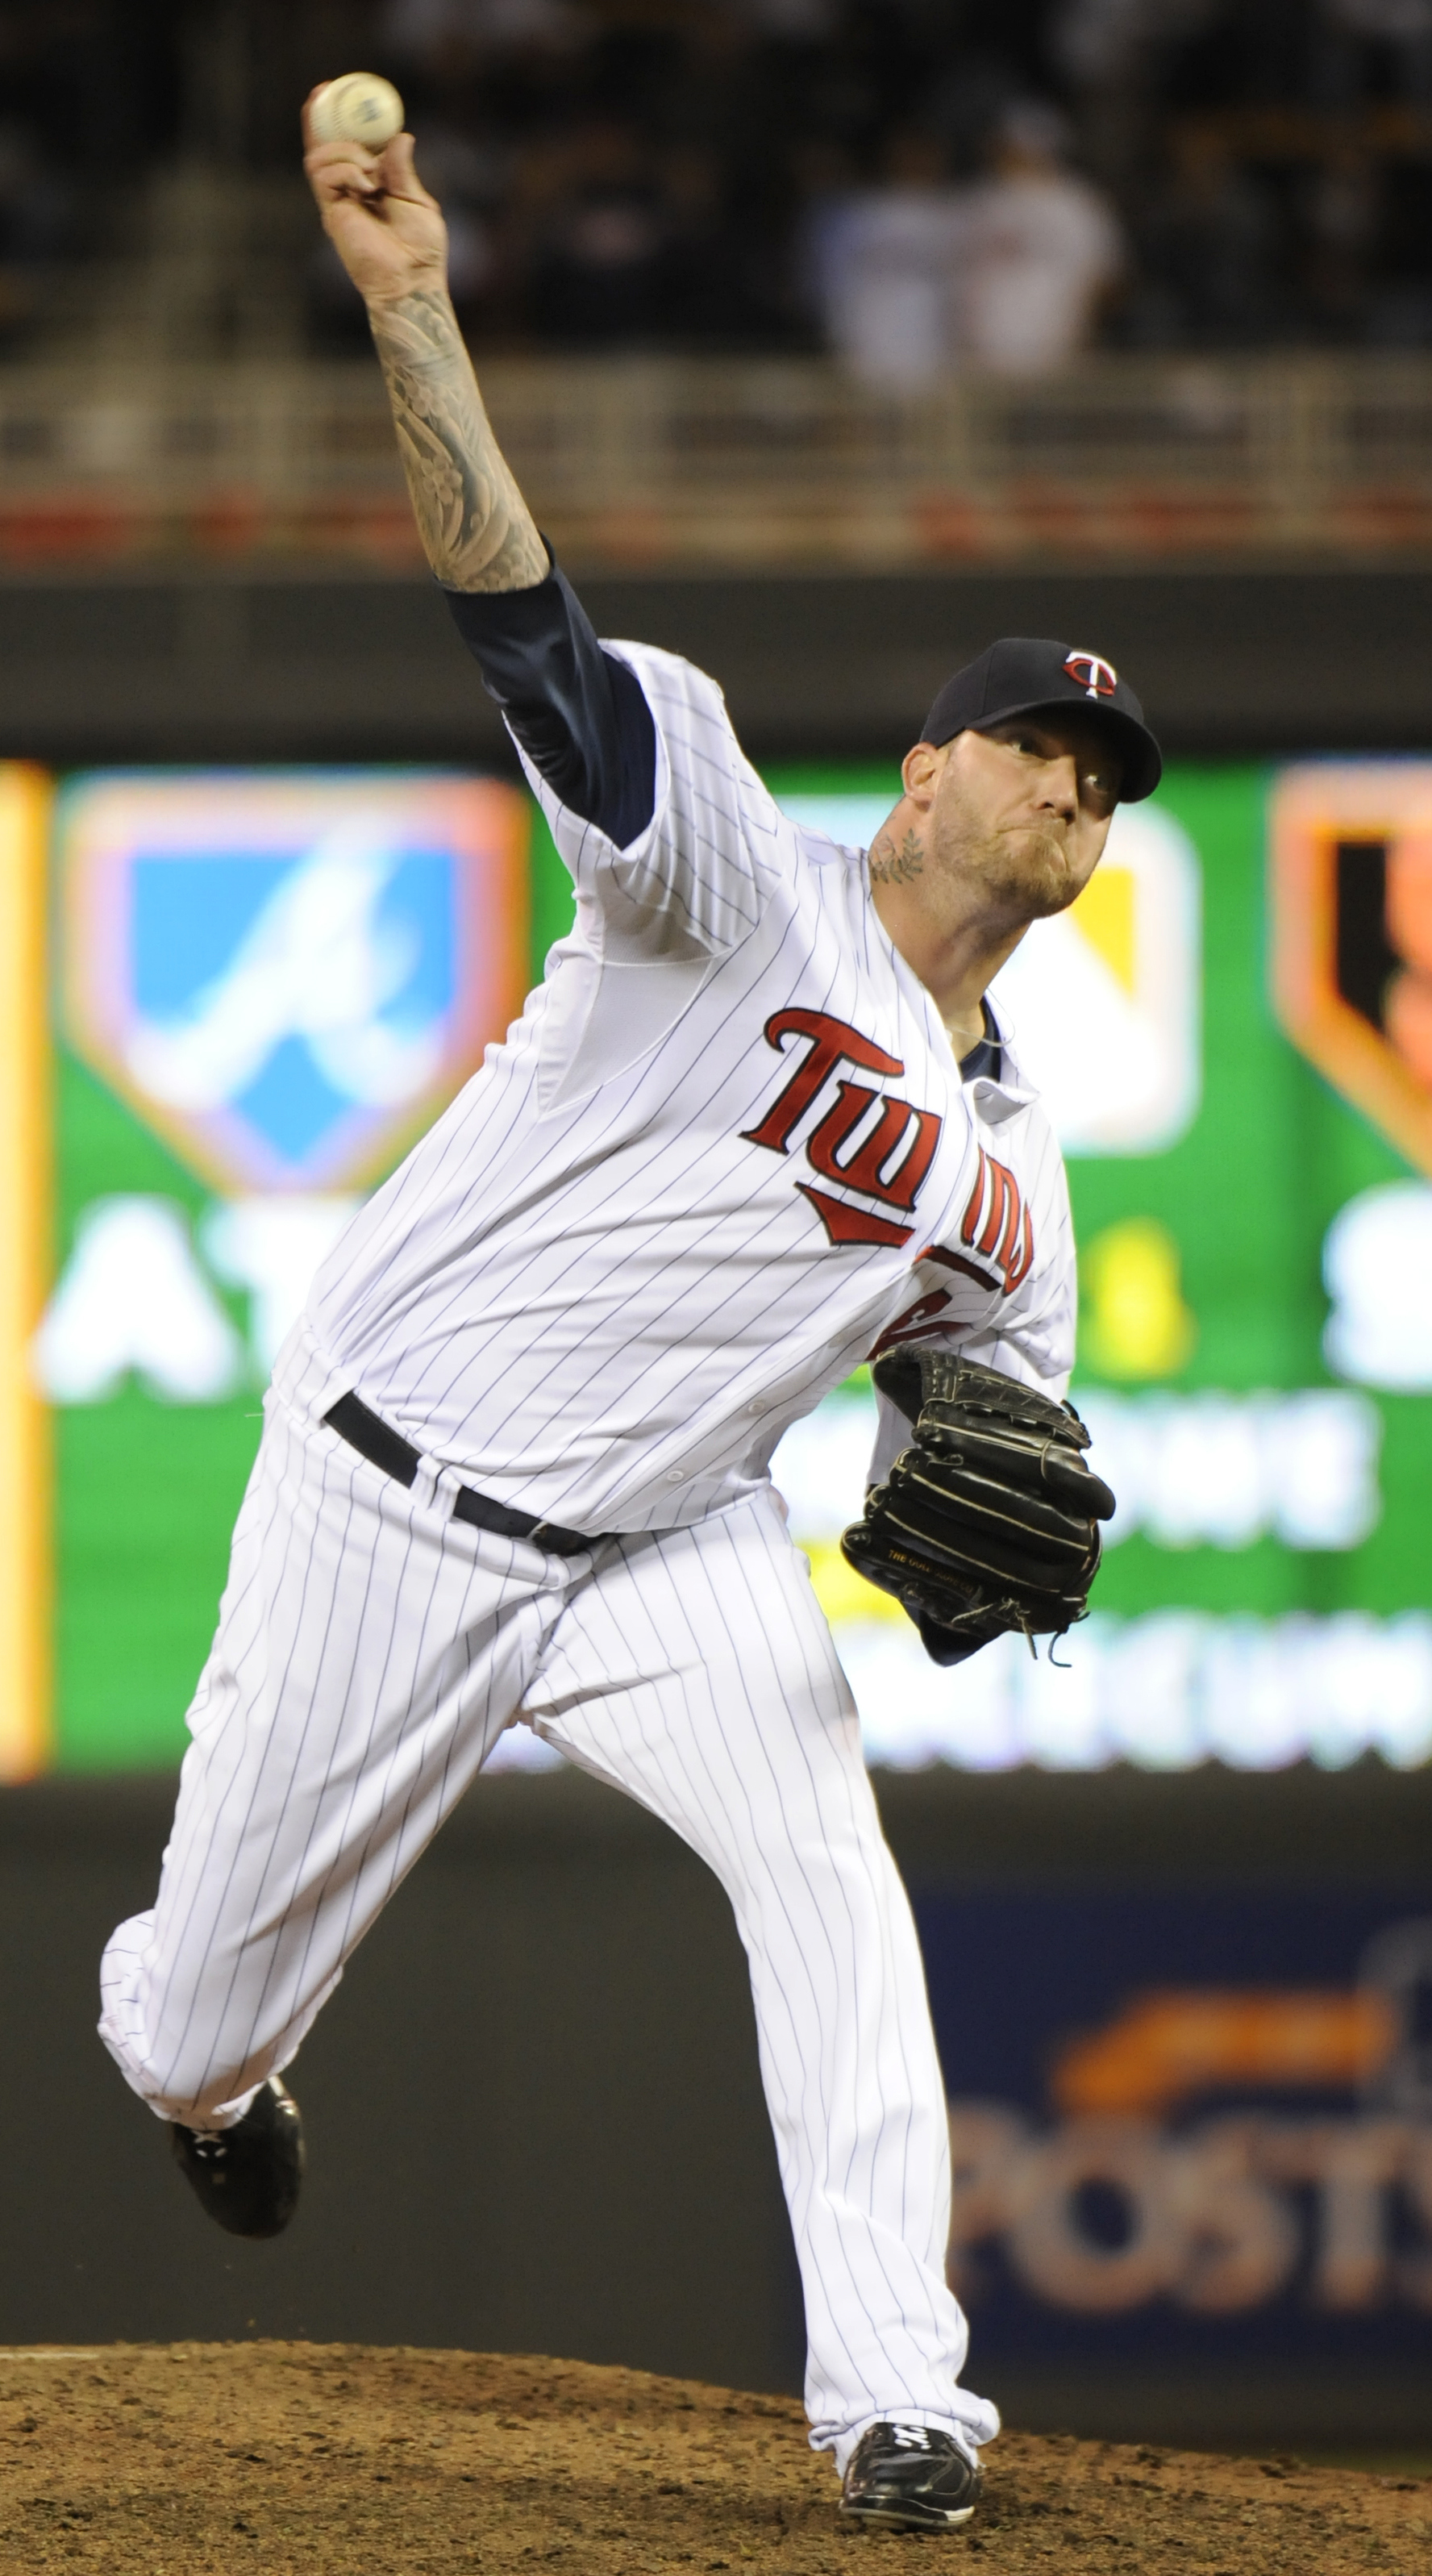 MINNEAPOLIS, MN - OCTOBER 6: Jon Rauch #60 of the Minnesota Twins pitches during game one of the ALDS against the New York Yankees on October 6, 2010 at Target Field in Minneapolis, Minnesota. (Photo by Hannah Foslien /Getty Images)